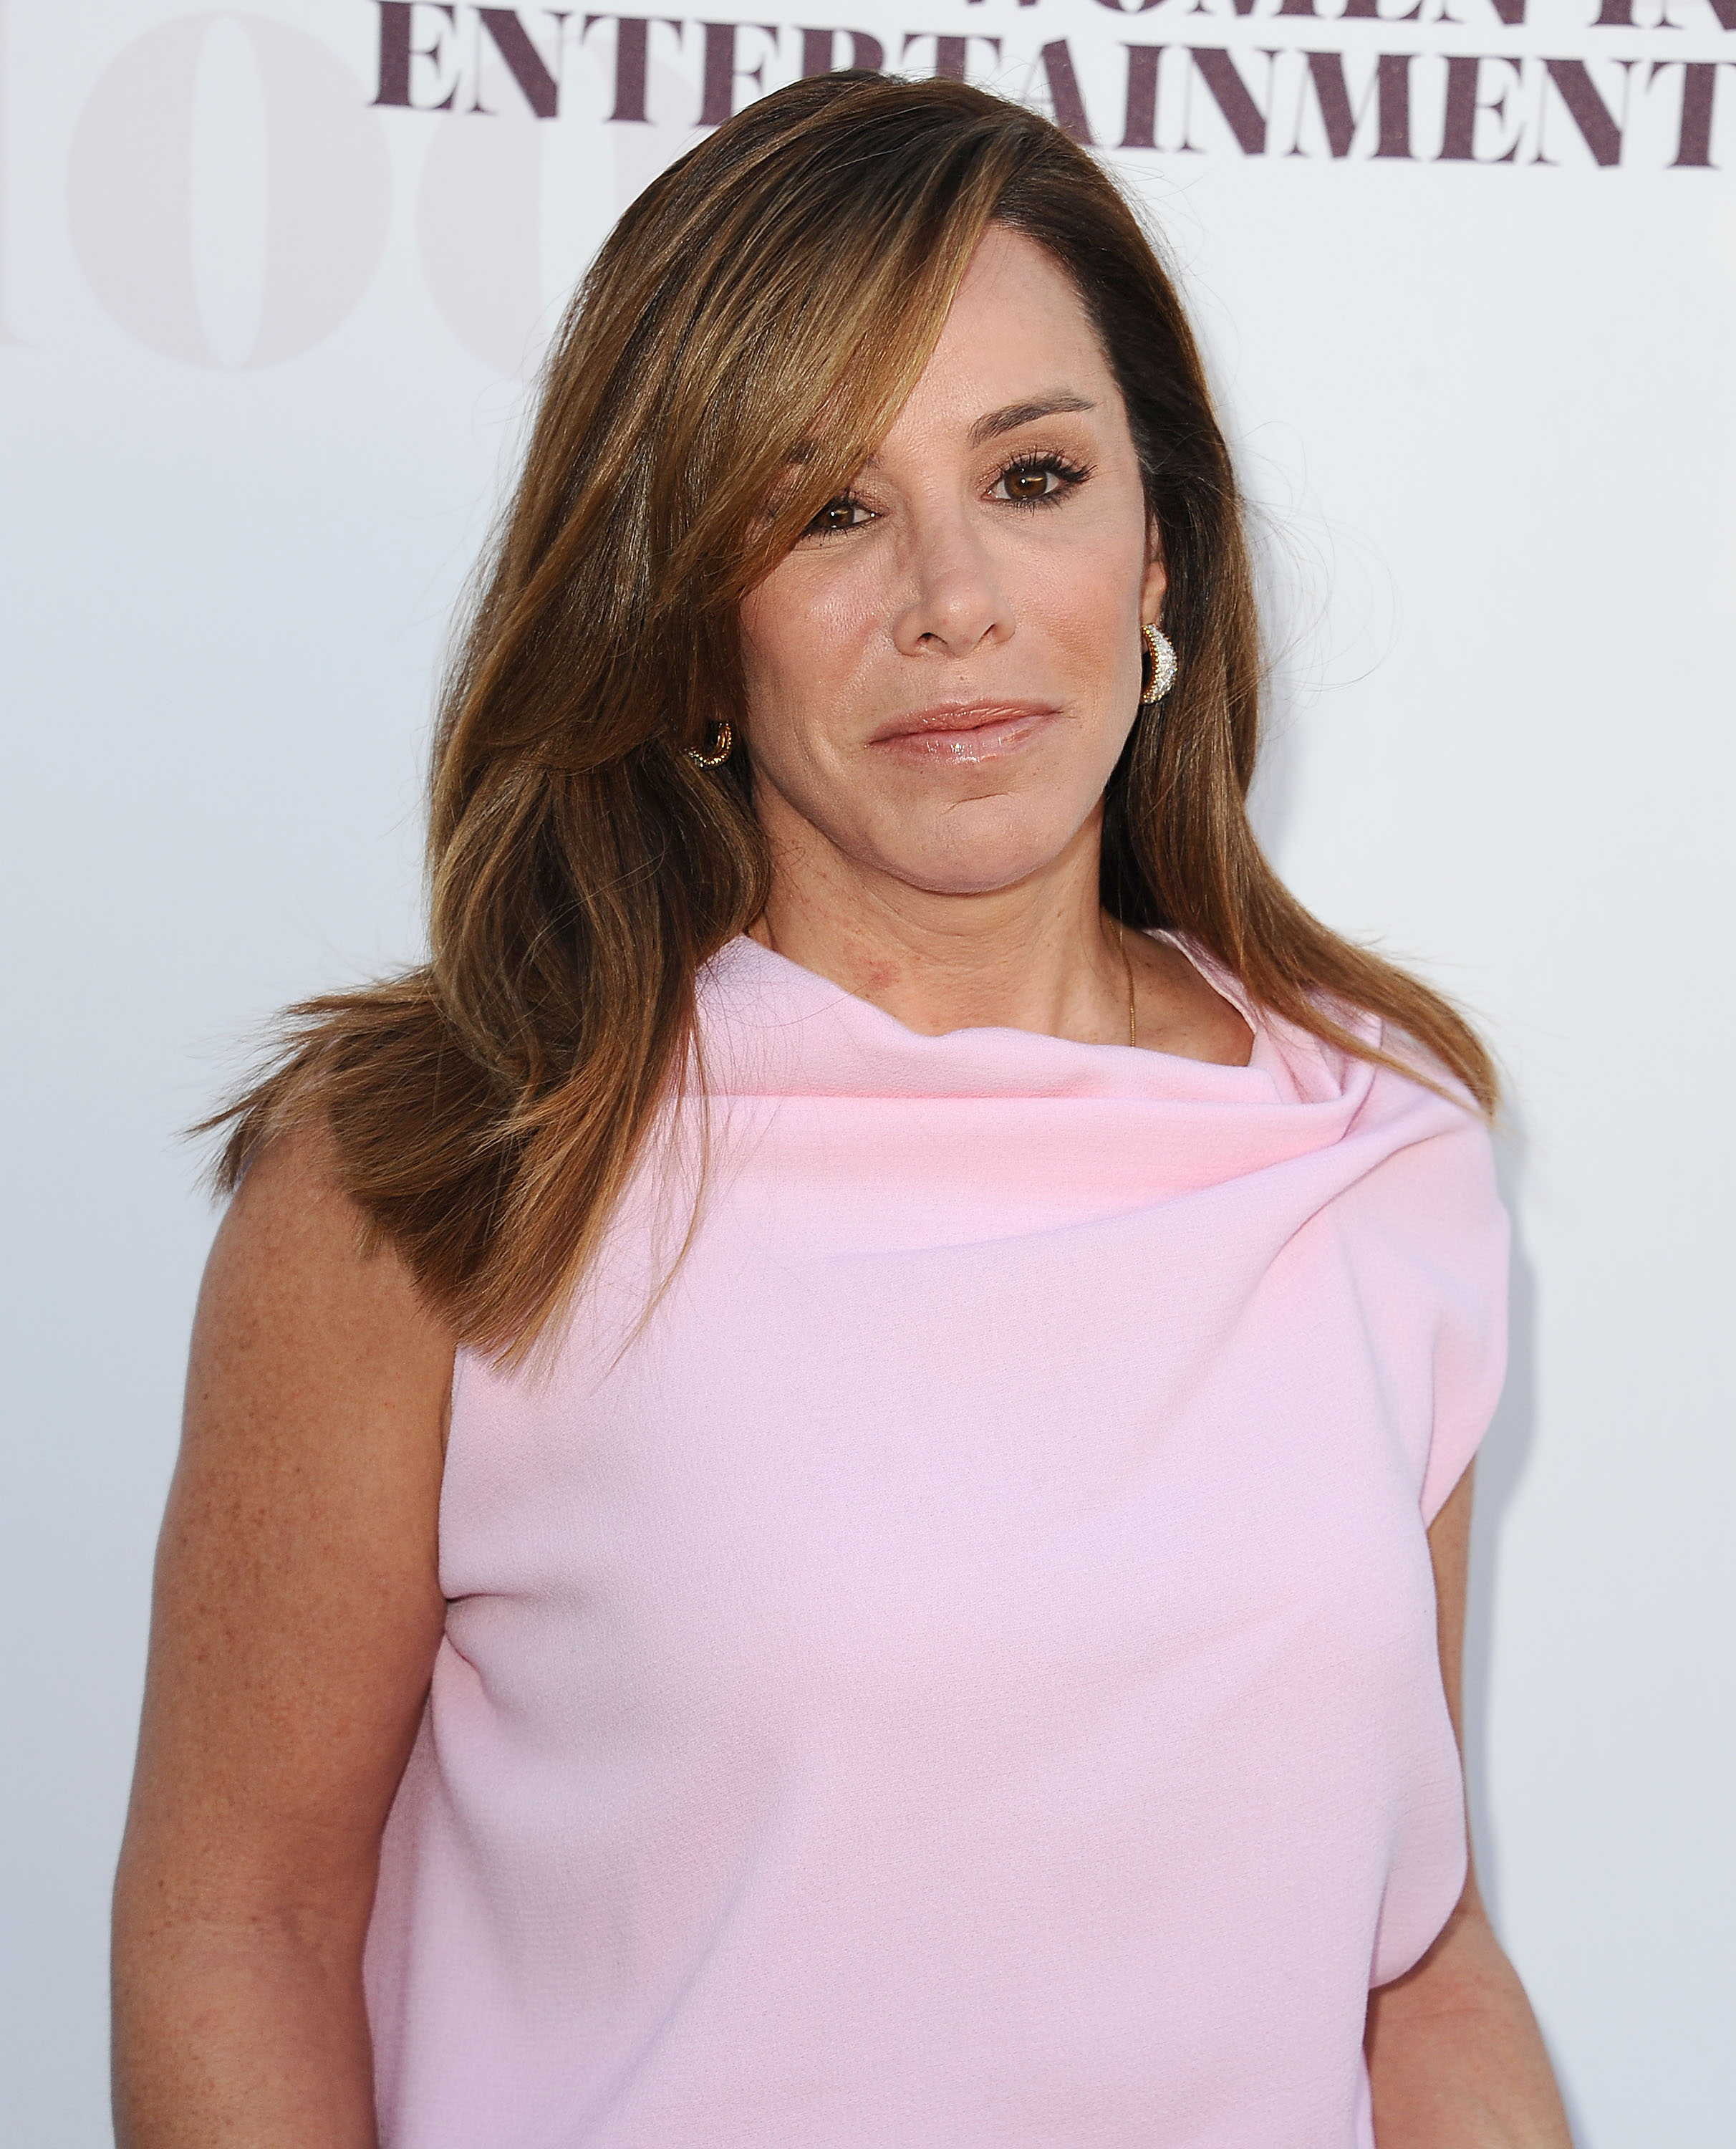 Melissa Rivers attends the Hollywood Reporter's Women In Entertainment breakfast at Milk Studios on Dec. 10, 2014 in Los Angeles.